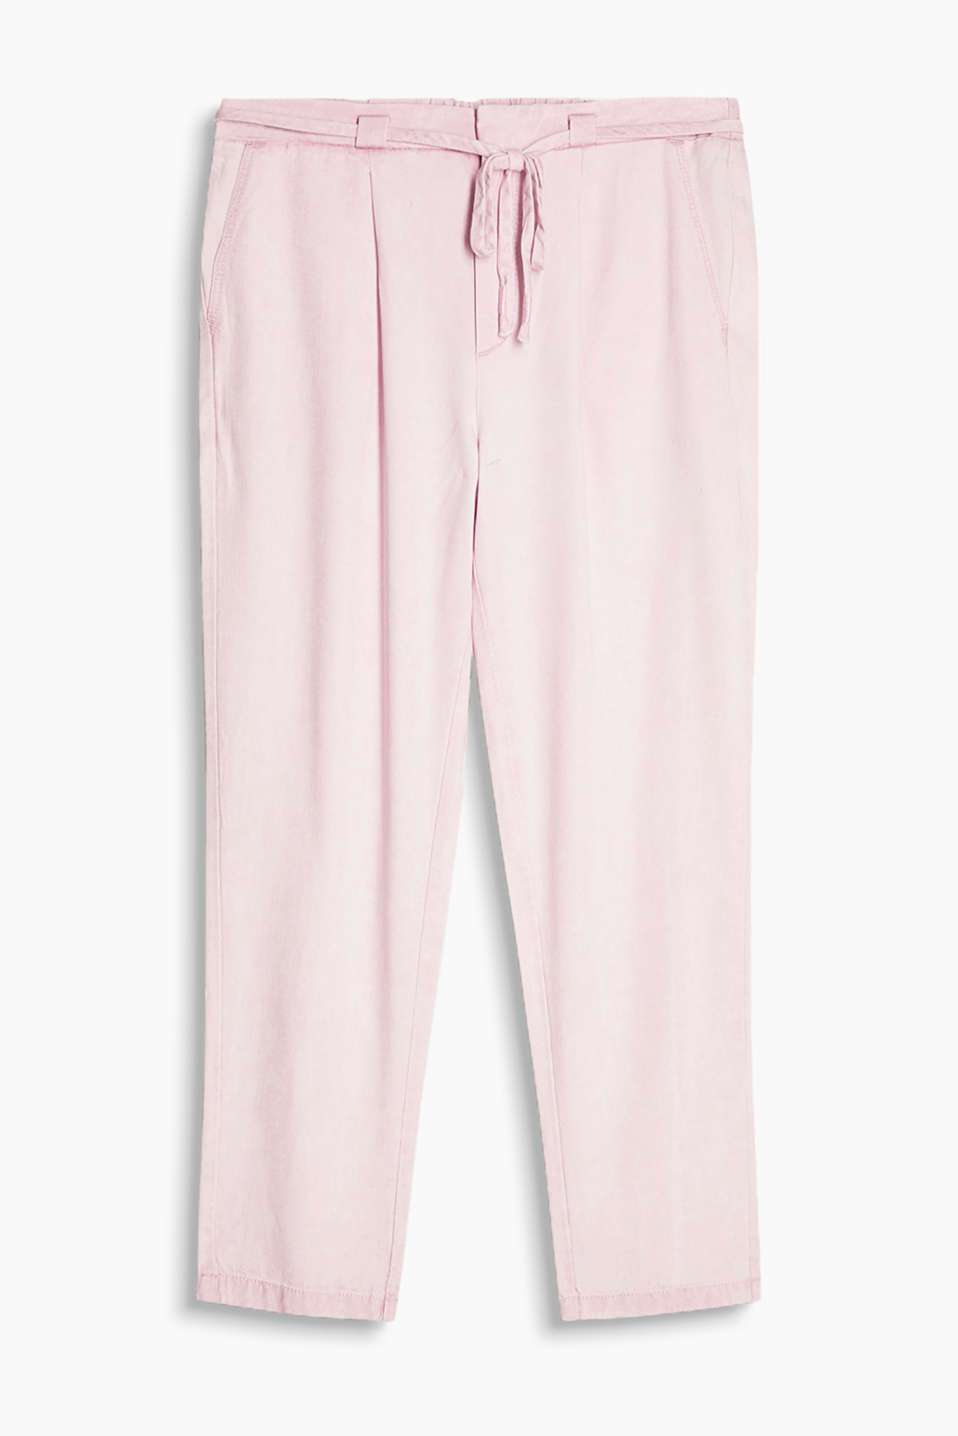 Ankle-length tracksuit bottoms with an elasticated waistband and a casual, trendy dye effect